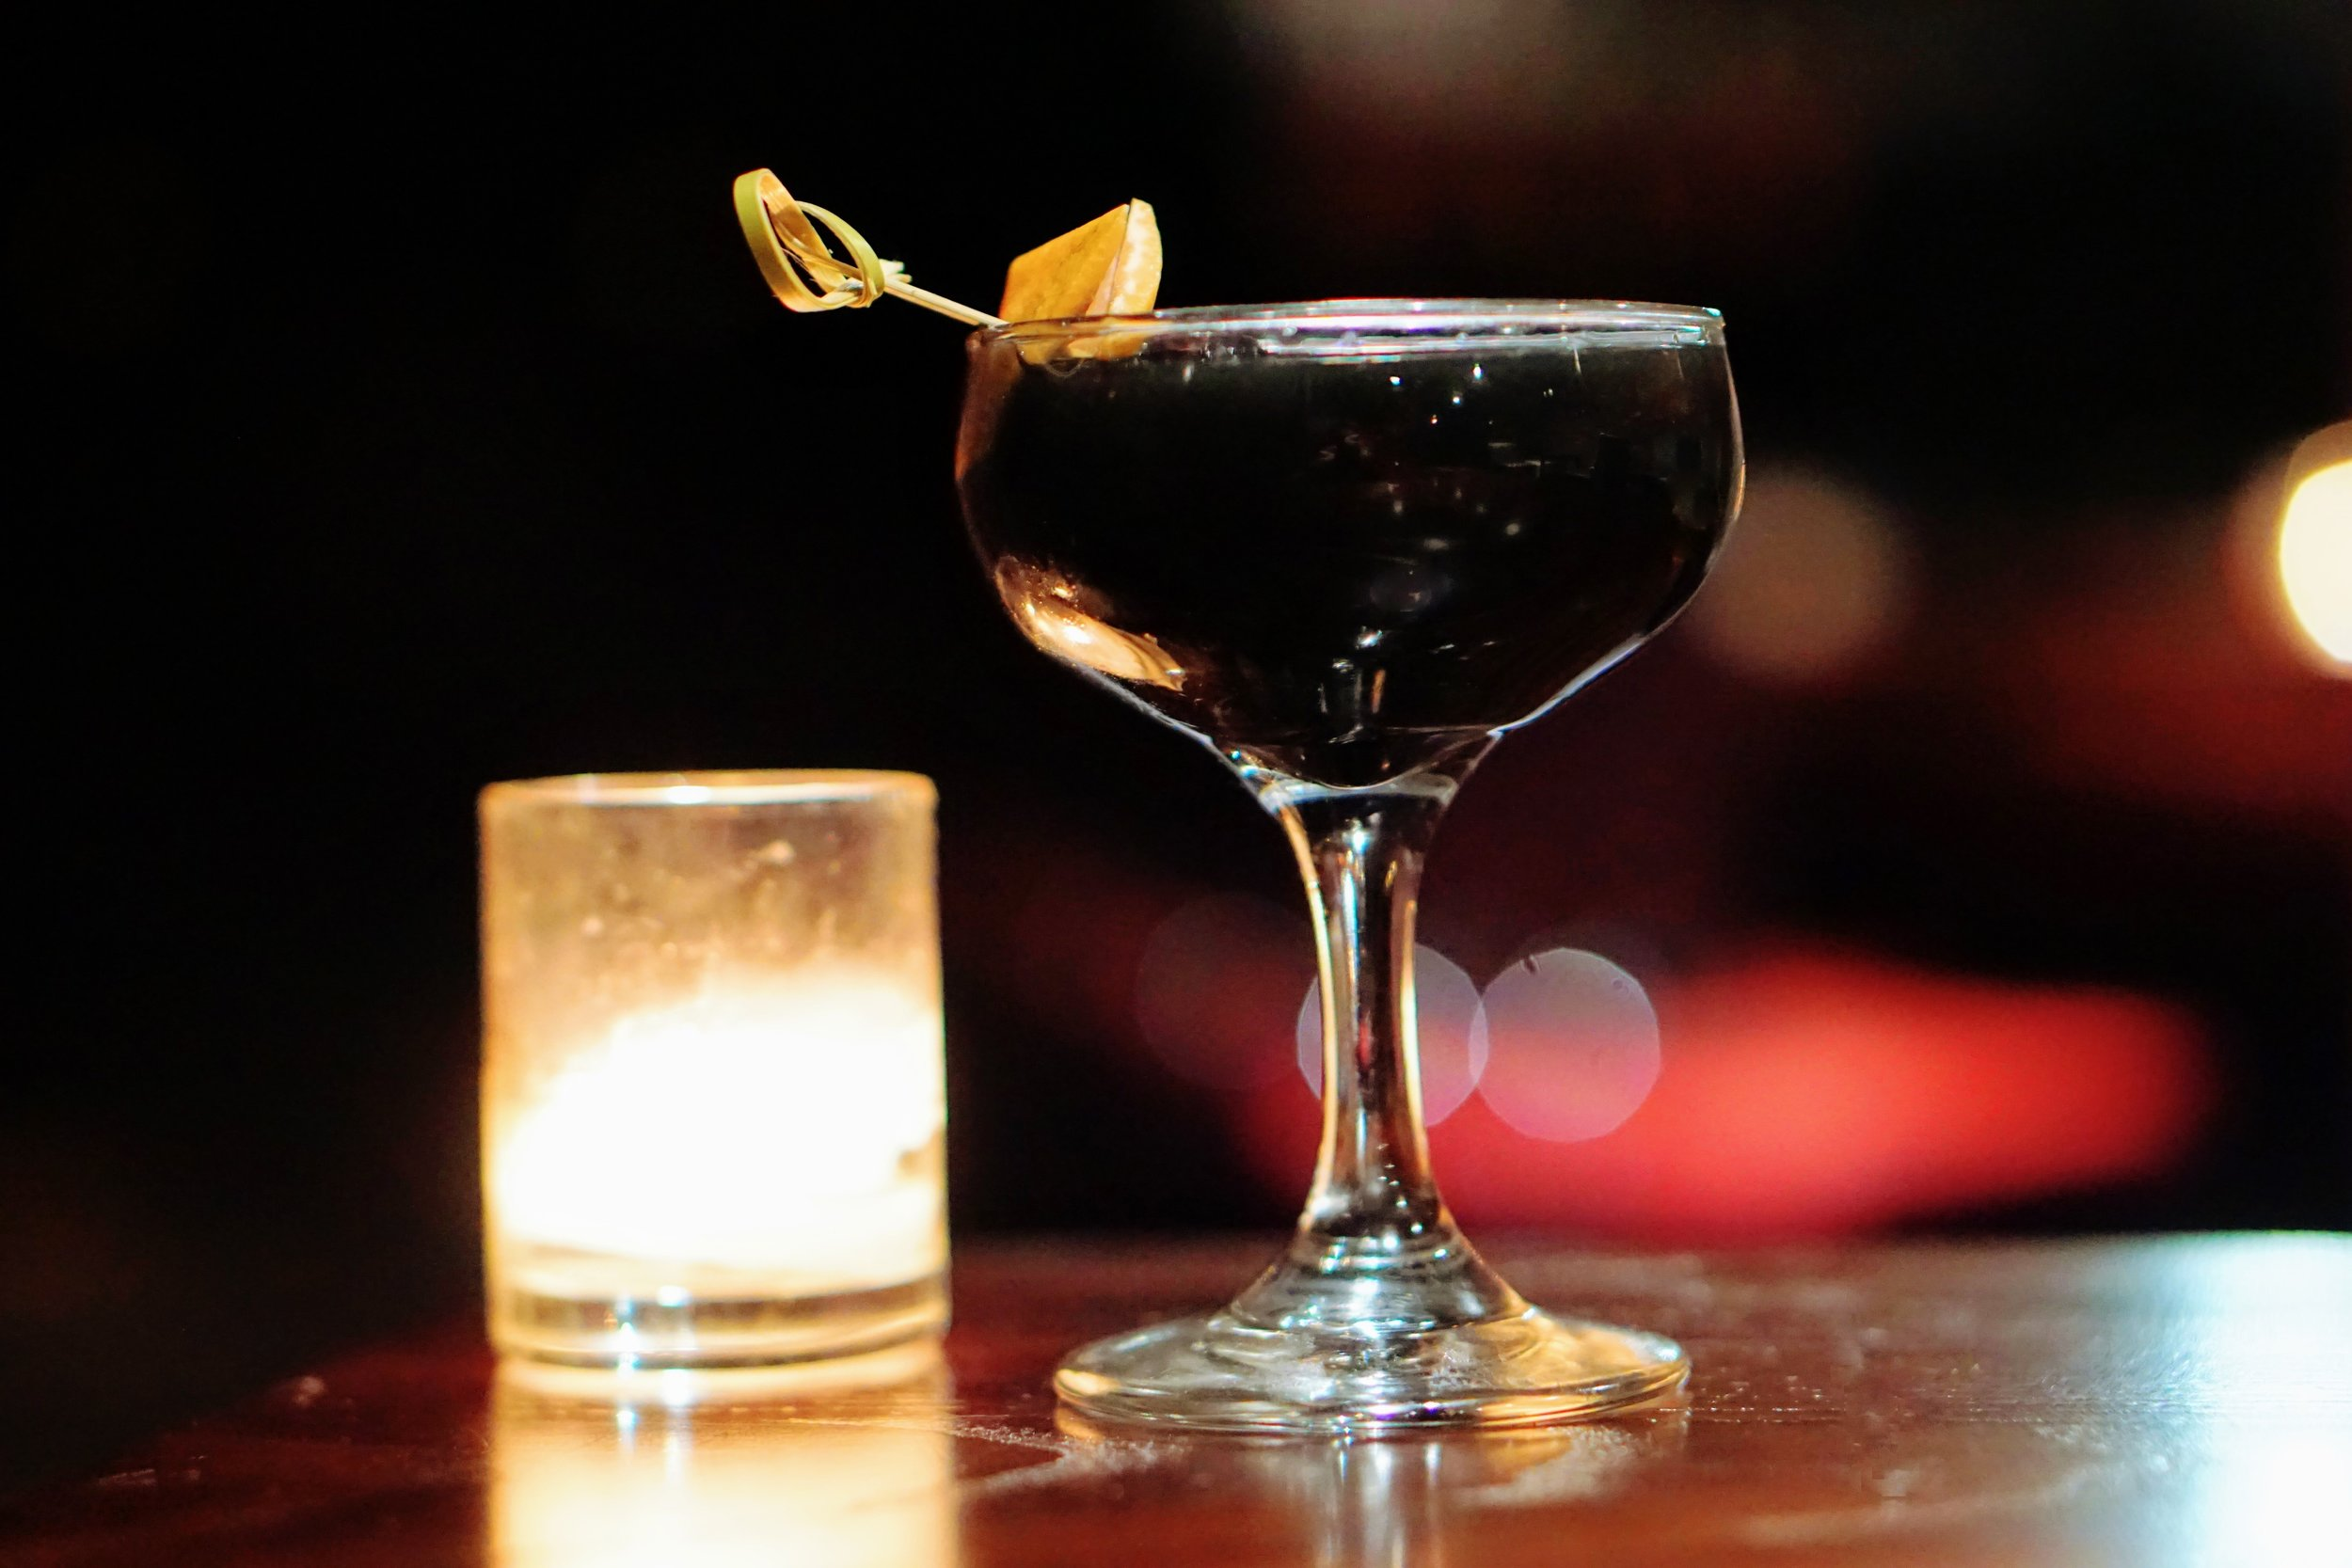 Seamus Banning - Vesper The Black Pearl  Eucalyptus, bitter citrus and spice affably dance with molasses in this dark rum cocktail, though its color remains as mysterious as The Black Pearl